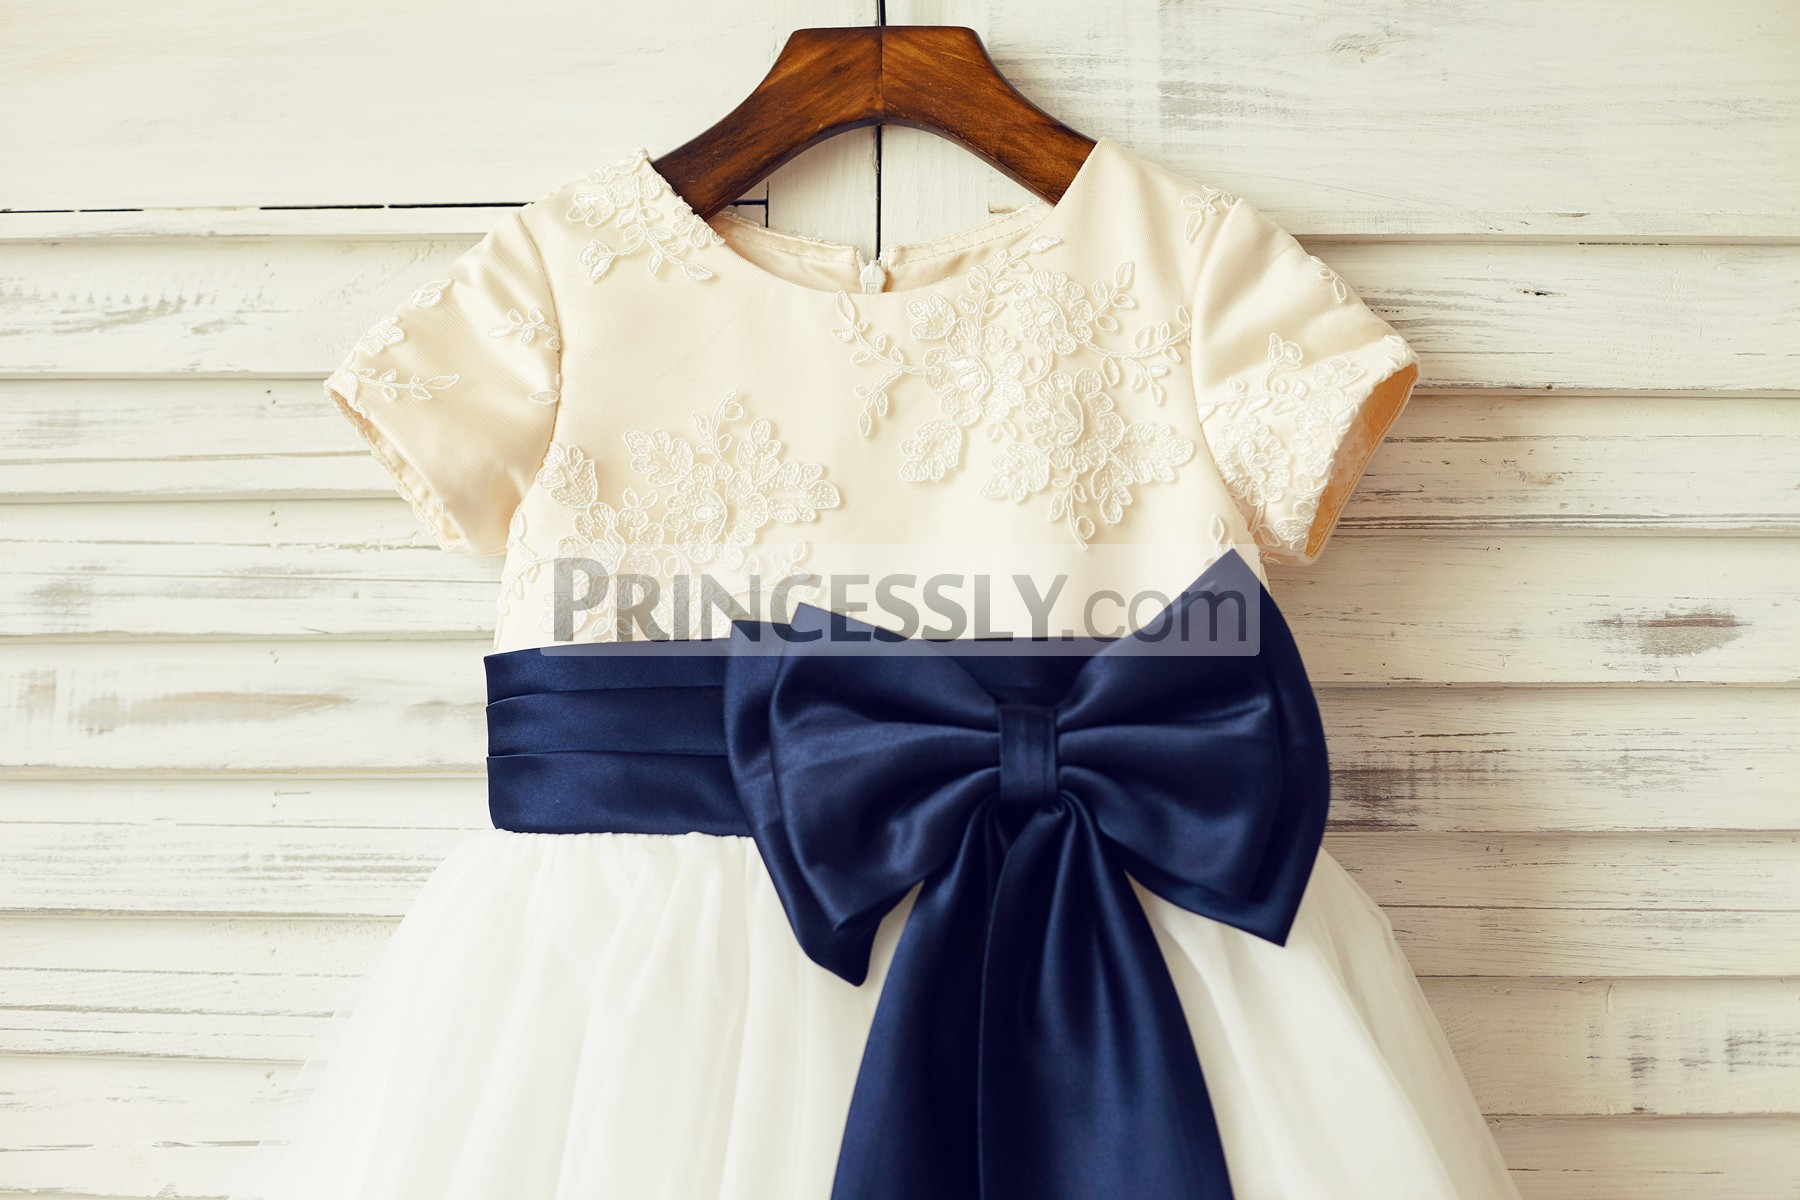 Sheer ivory lace bodice with champagne satin lining and navy blue belt and bow